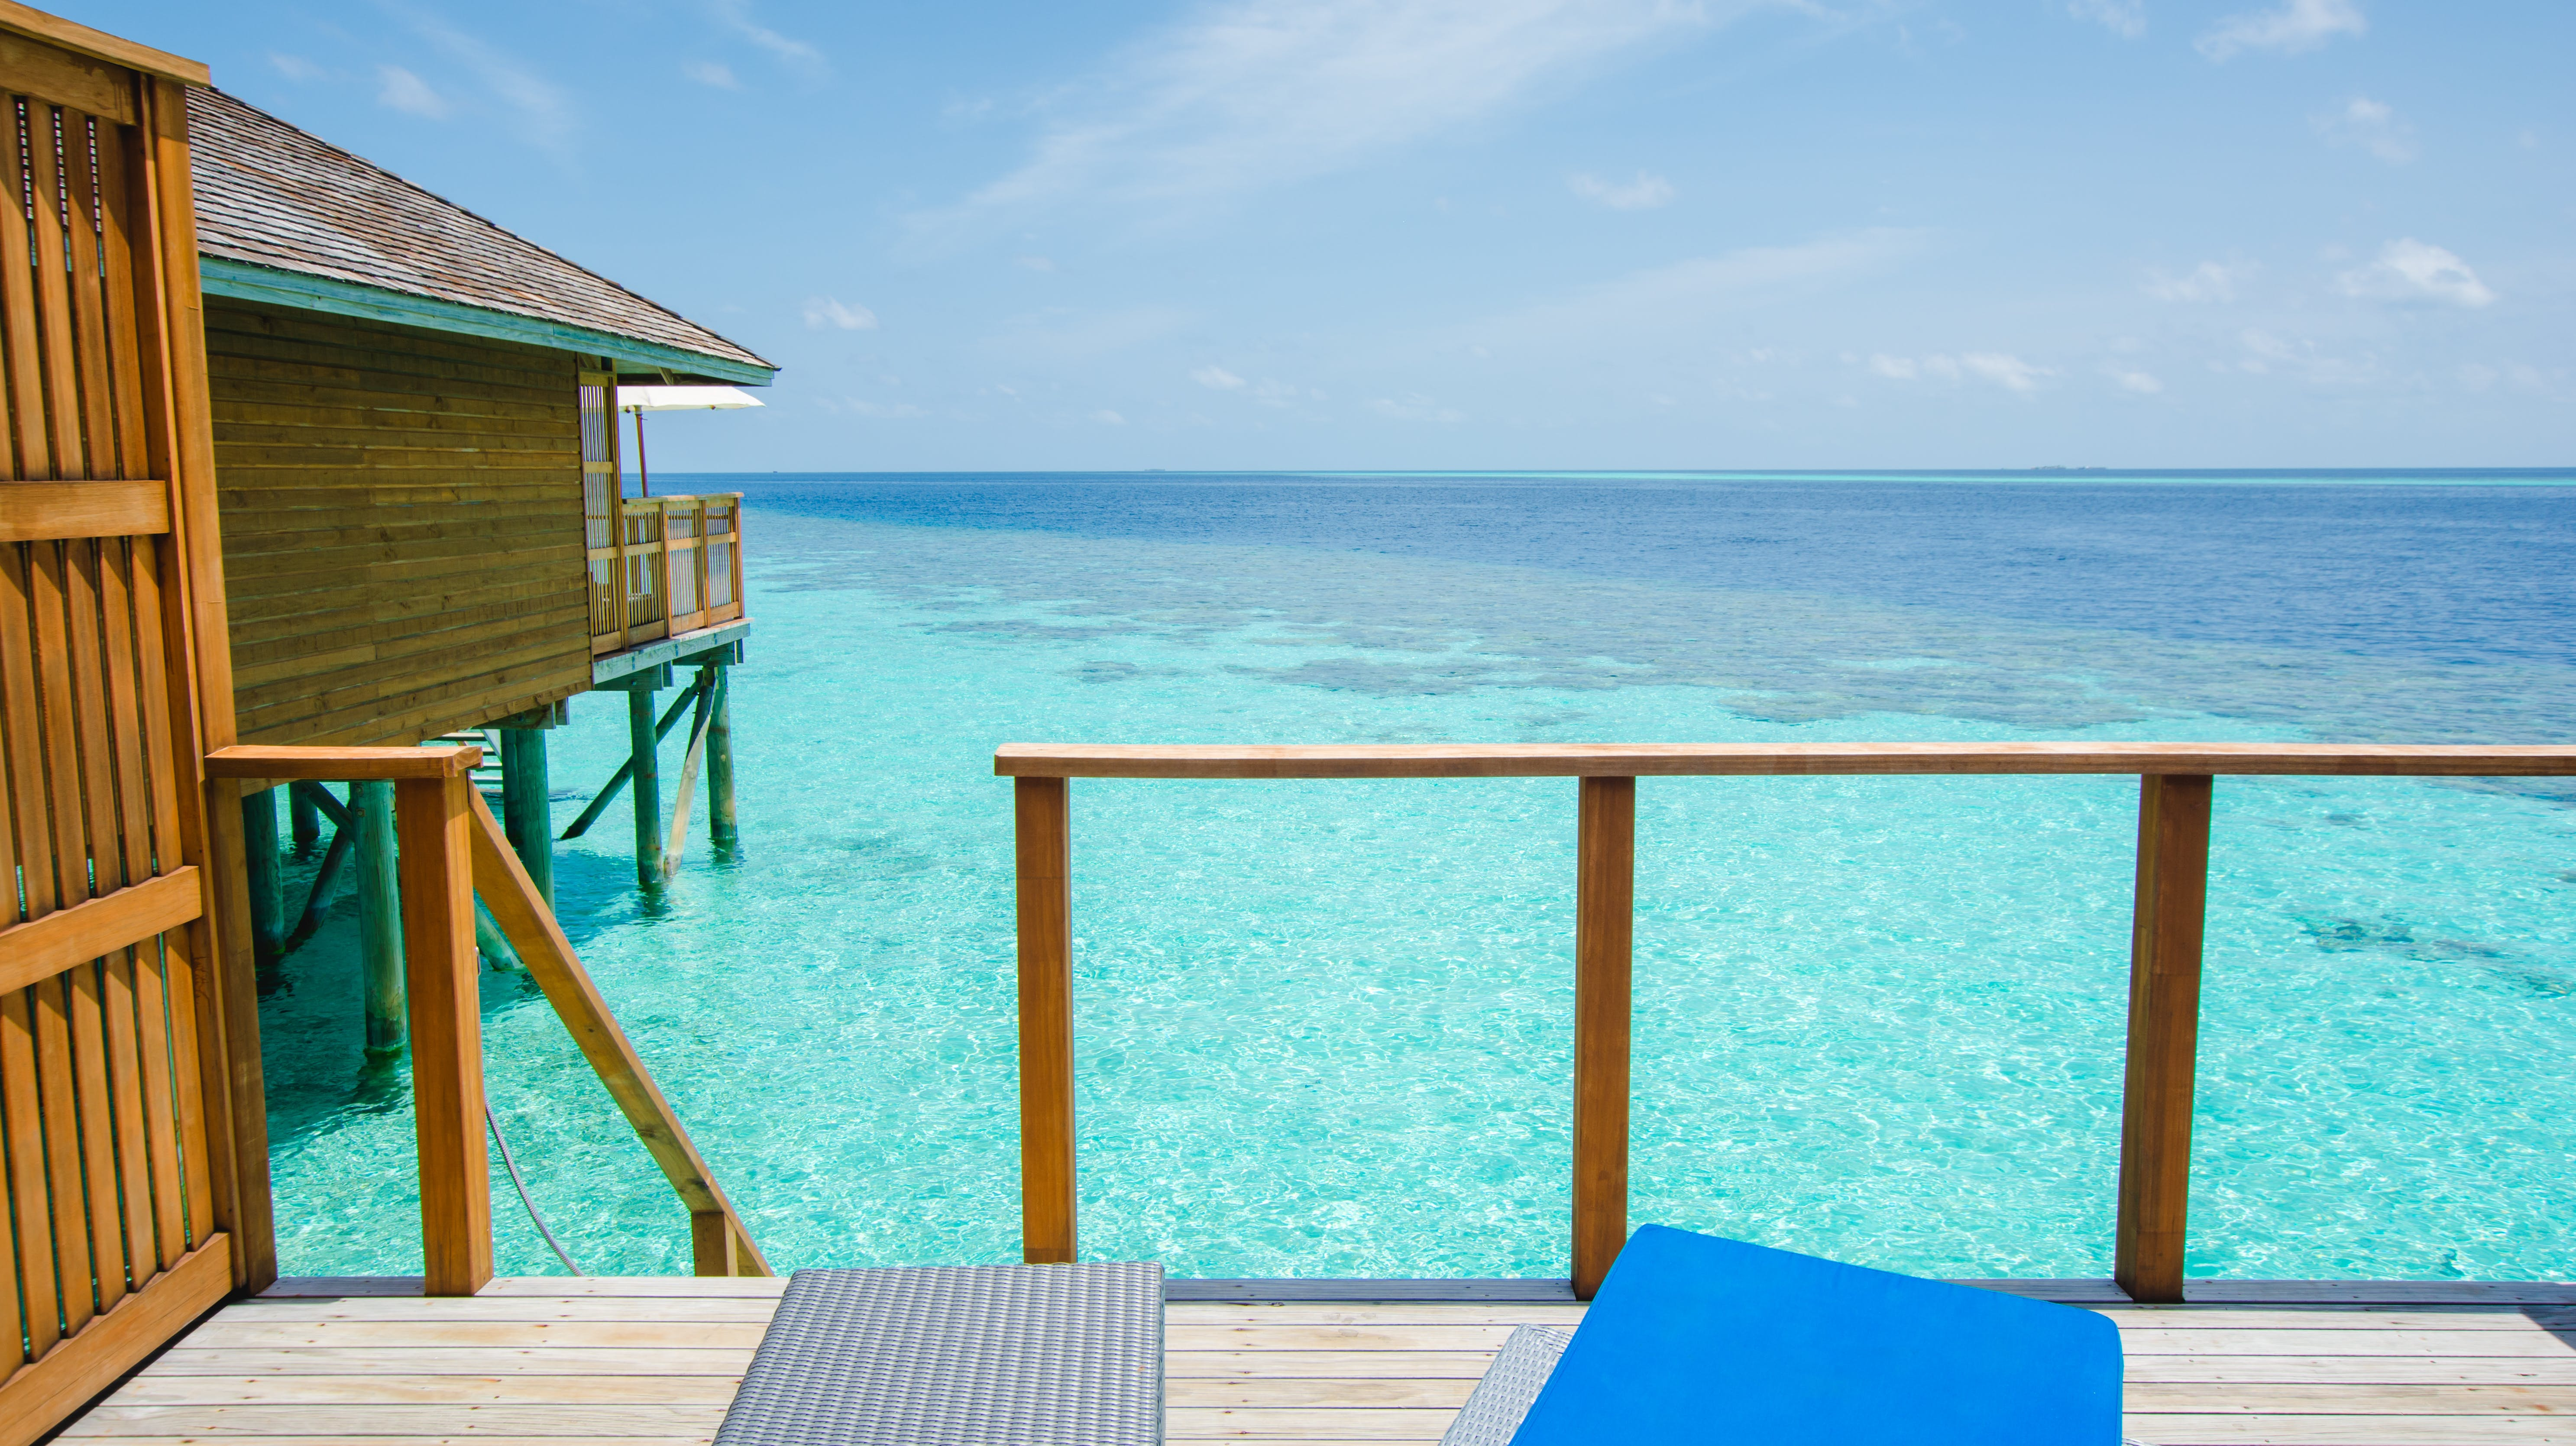 Blue and Gray Sun Lounges Near Body of Water